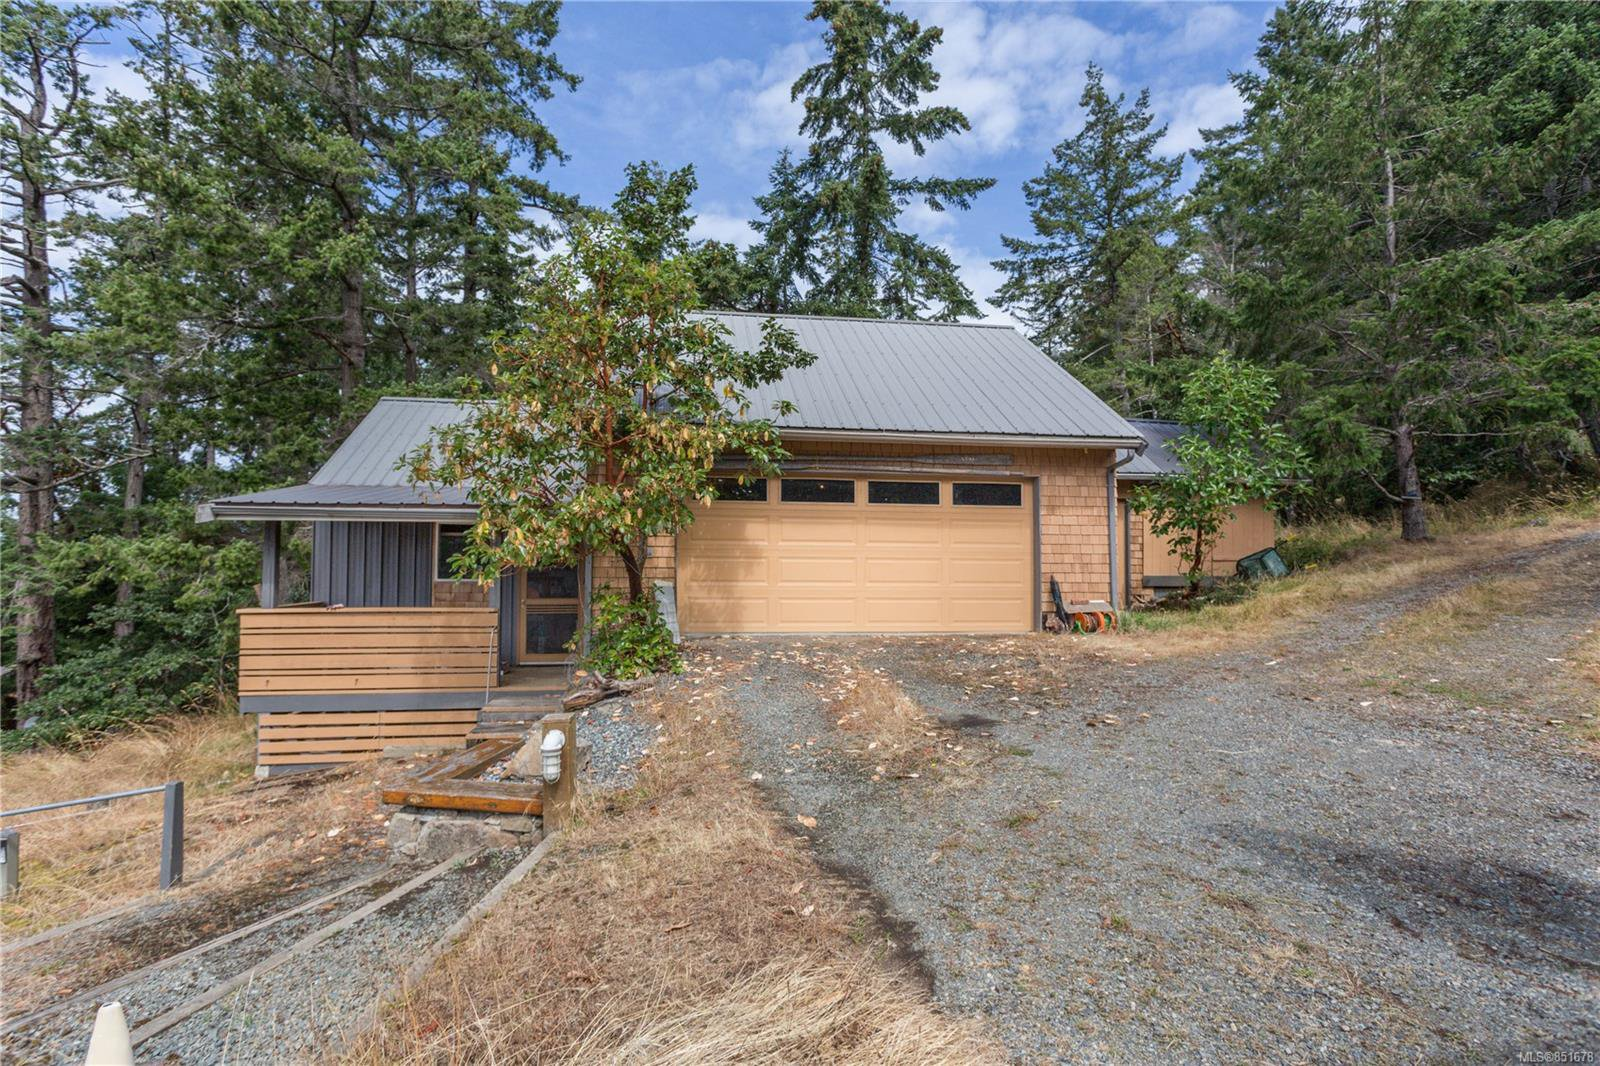 Photo 26: Photos: 262 Forbes Dr in : Isl Thetis Island House for sale (Islands)  : MLS®# 851678